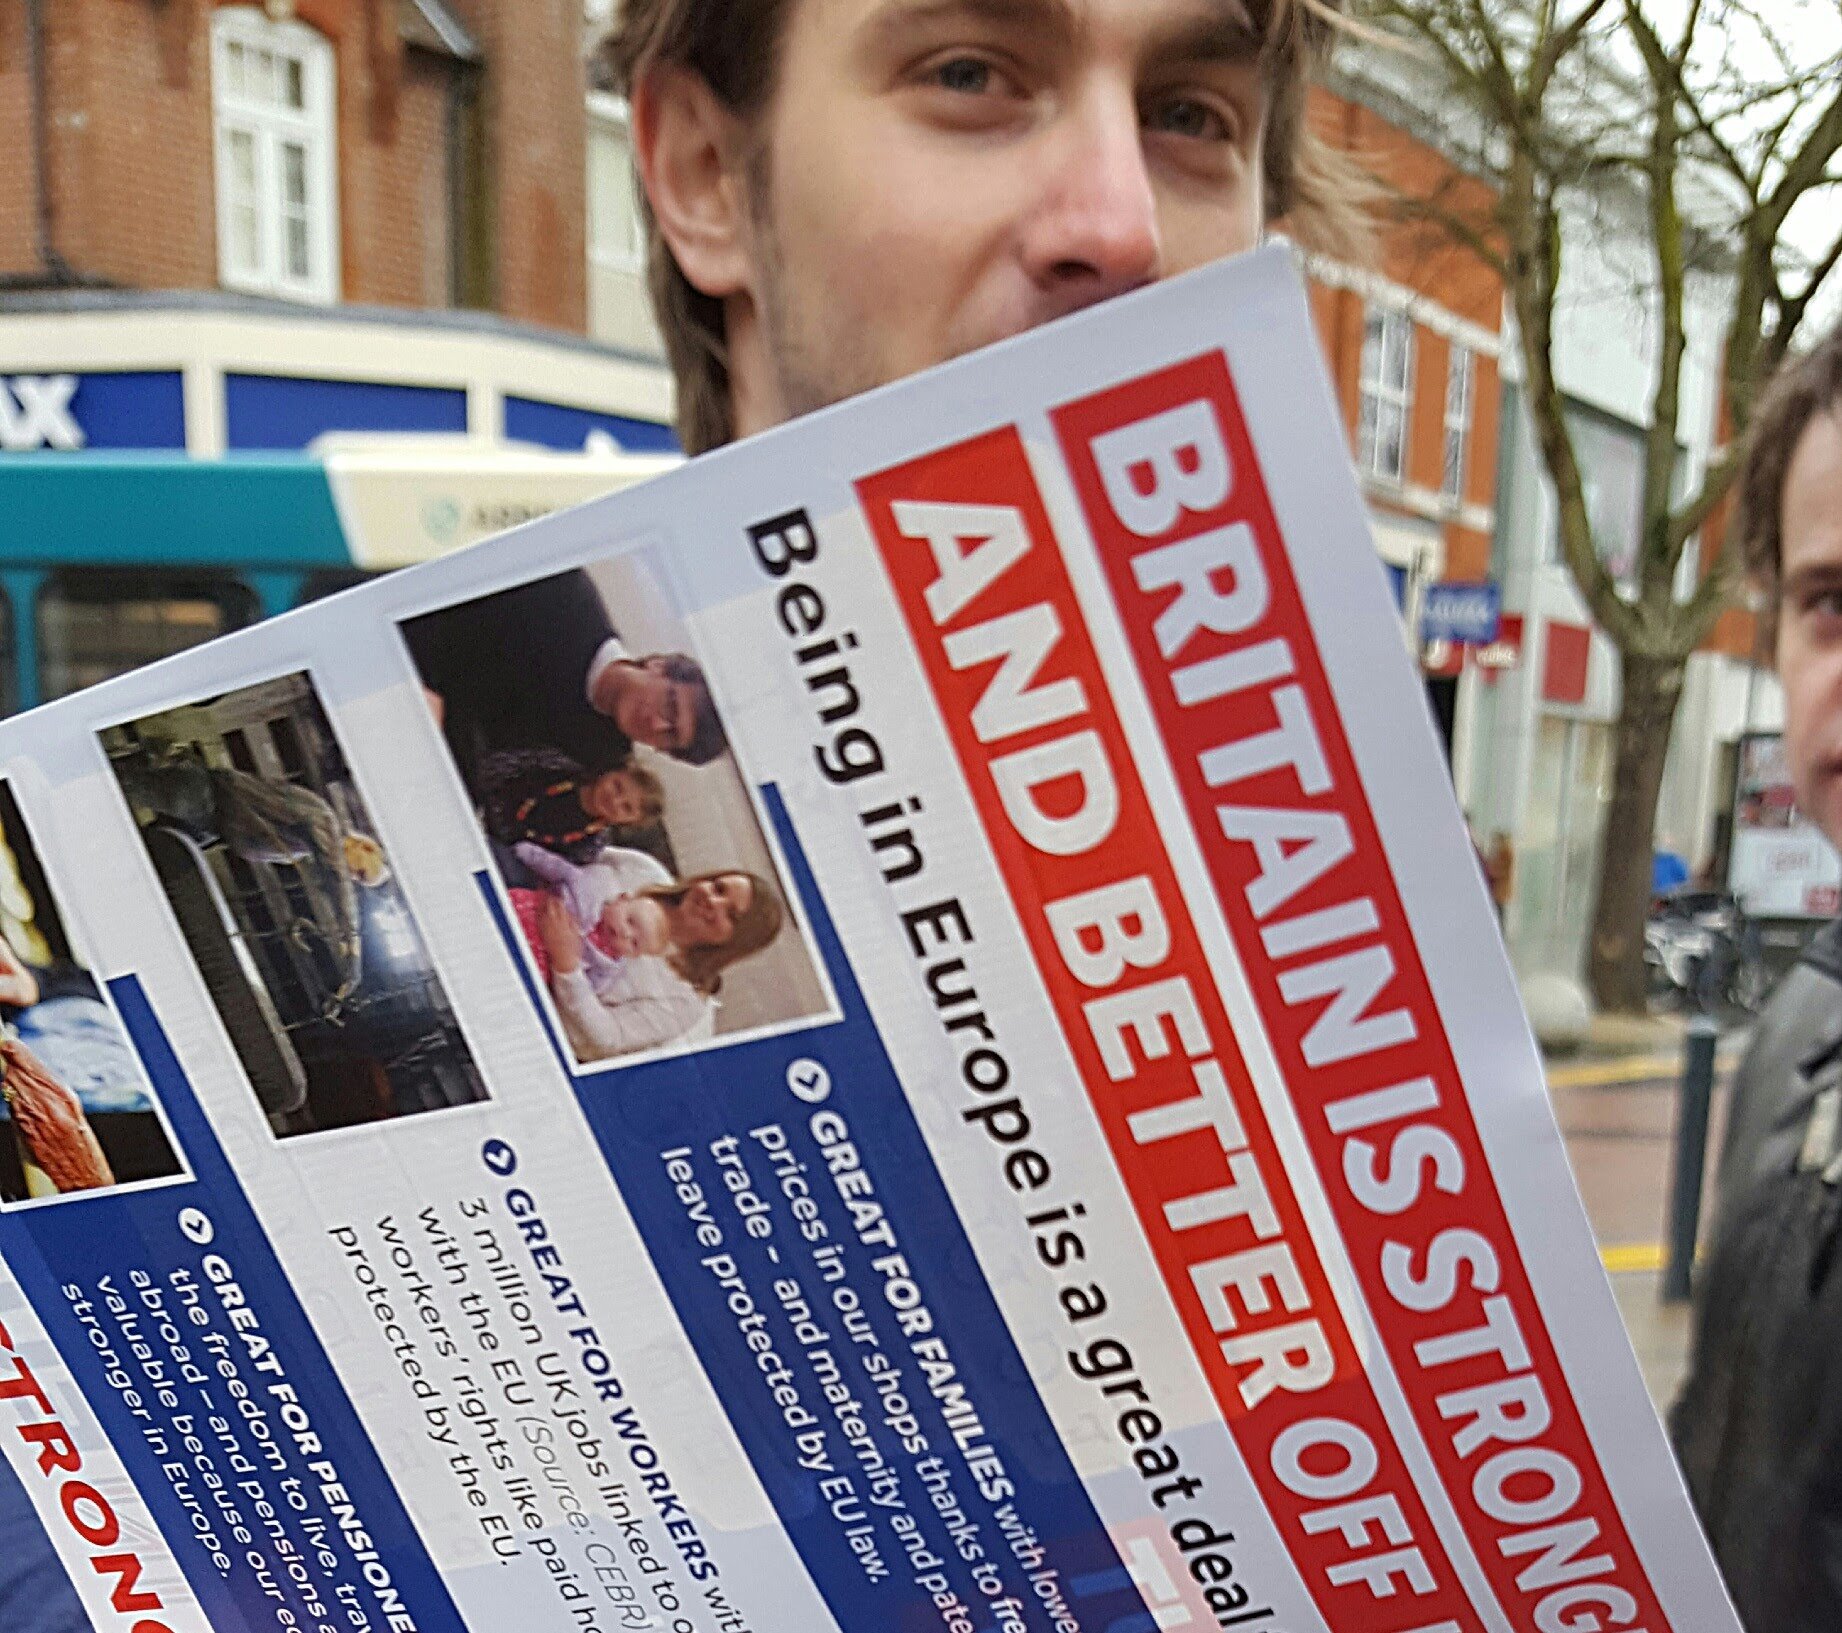 BREXIT: A Briton reads a flier supporting continued EU membership